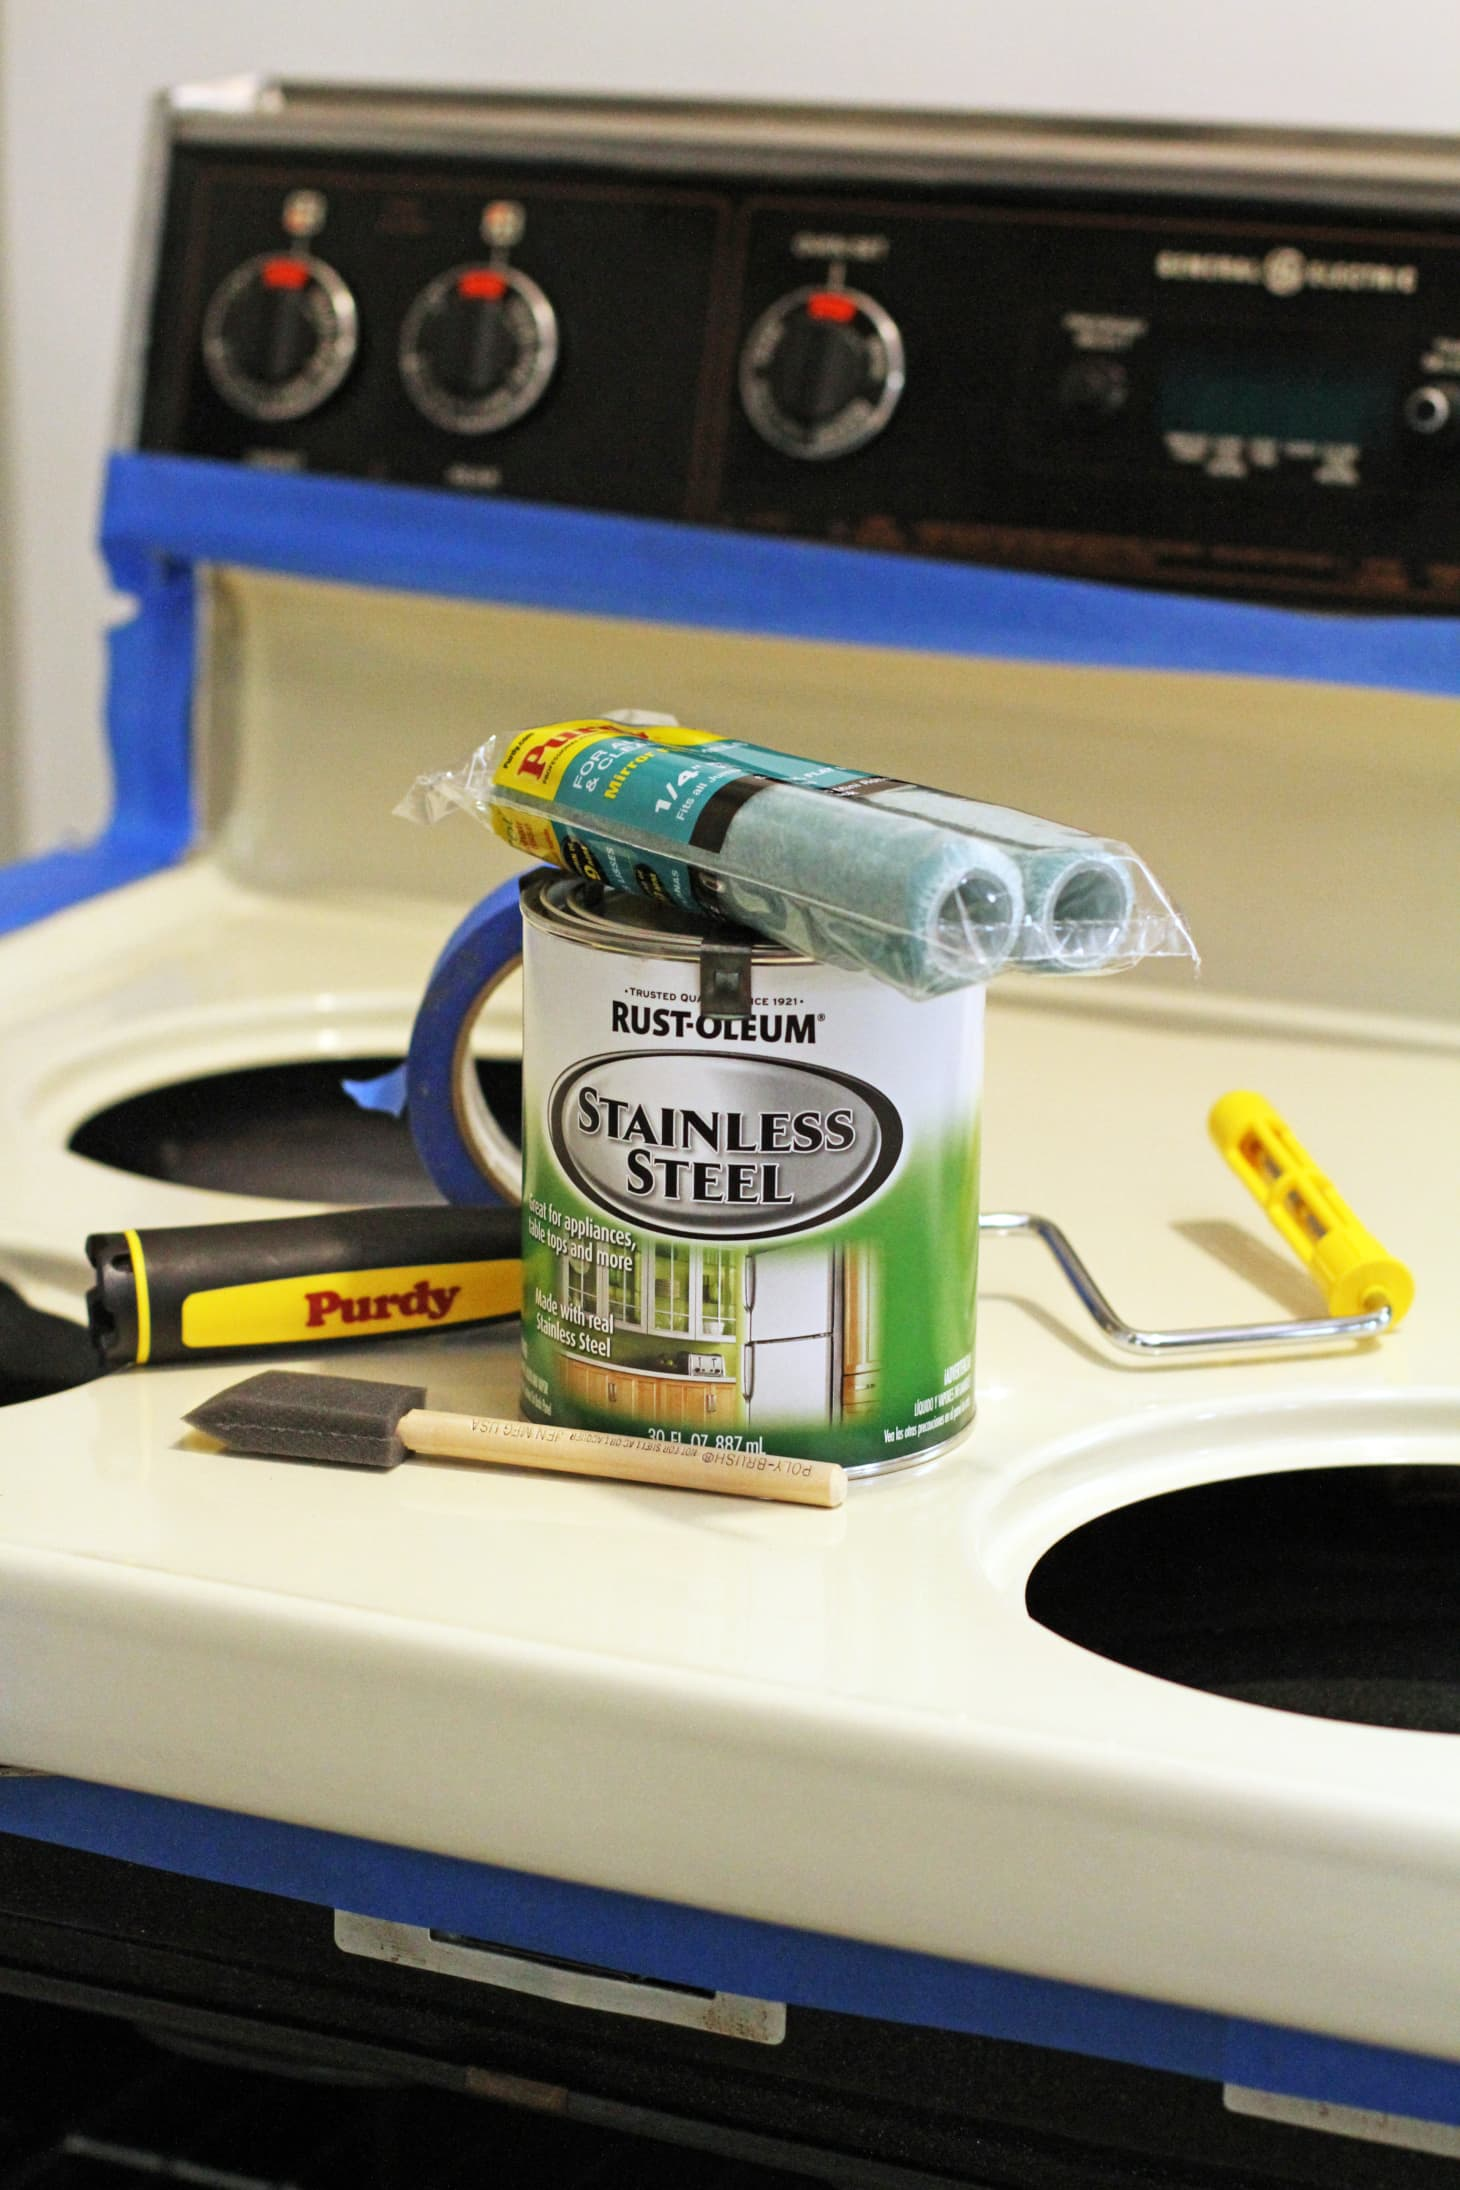 Rust-Oleum Stainless Steel Paint: Does it Work? | Apartment Therapy